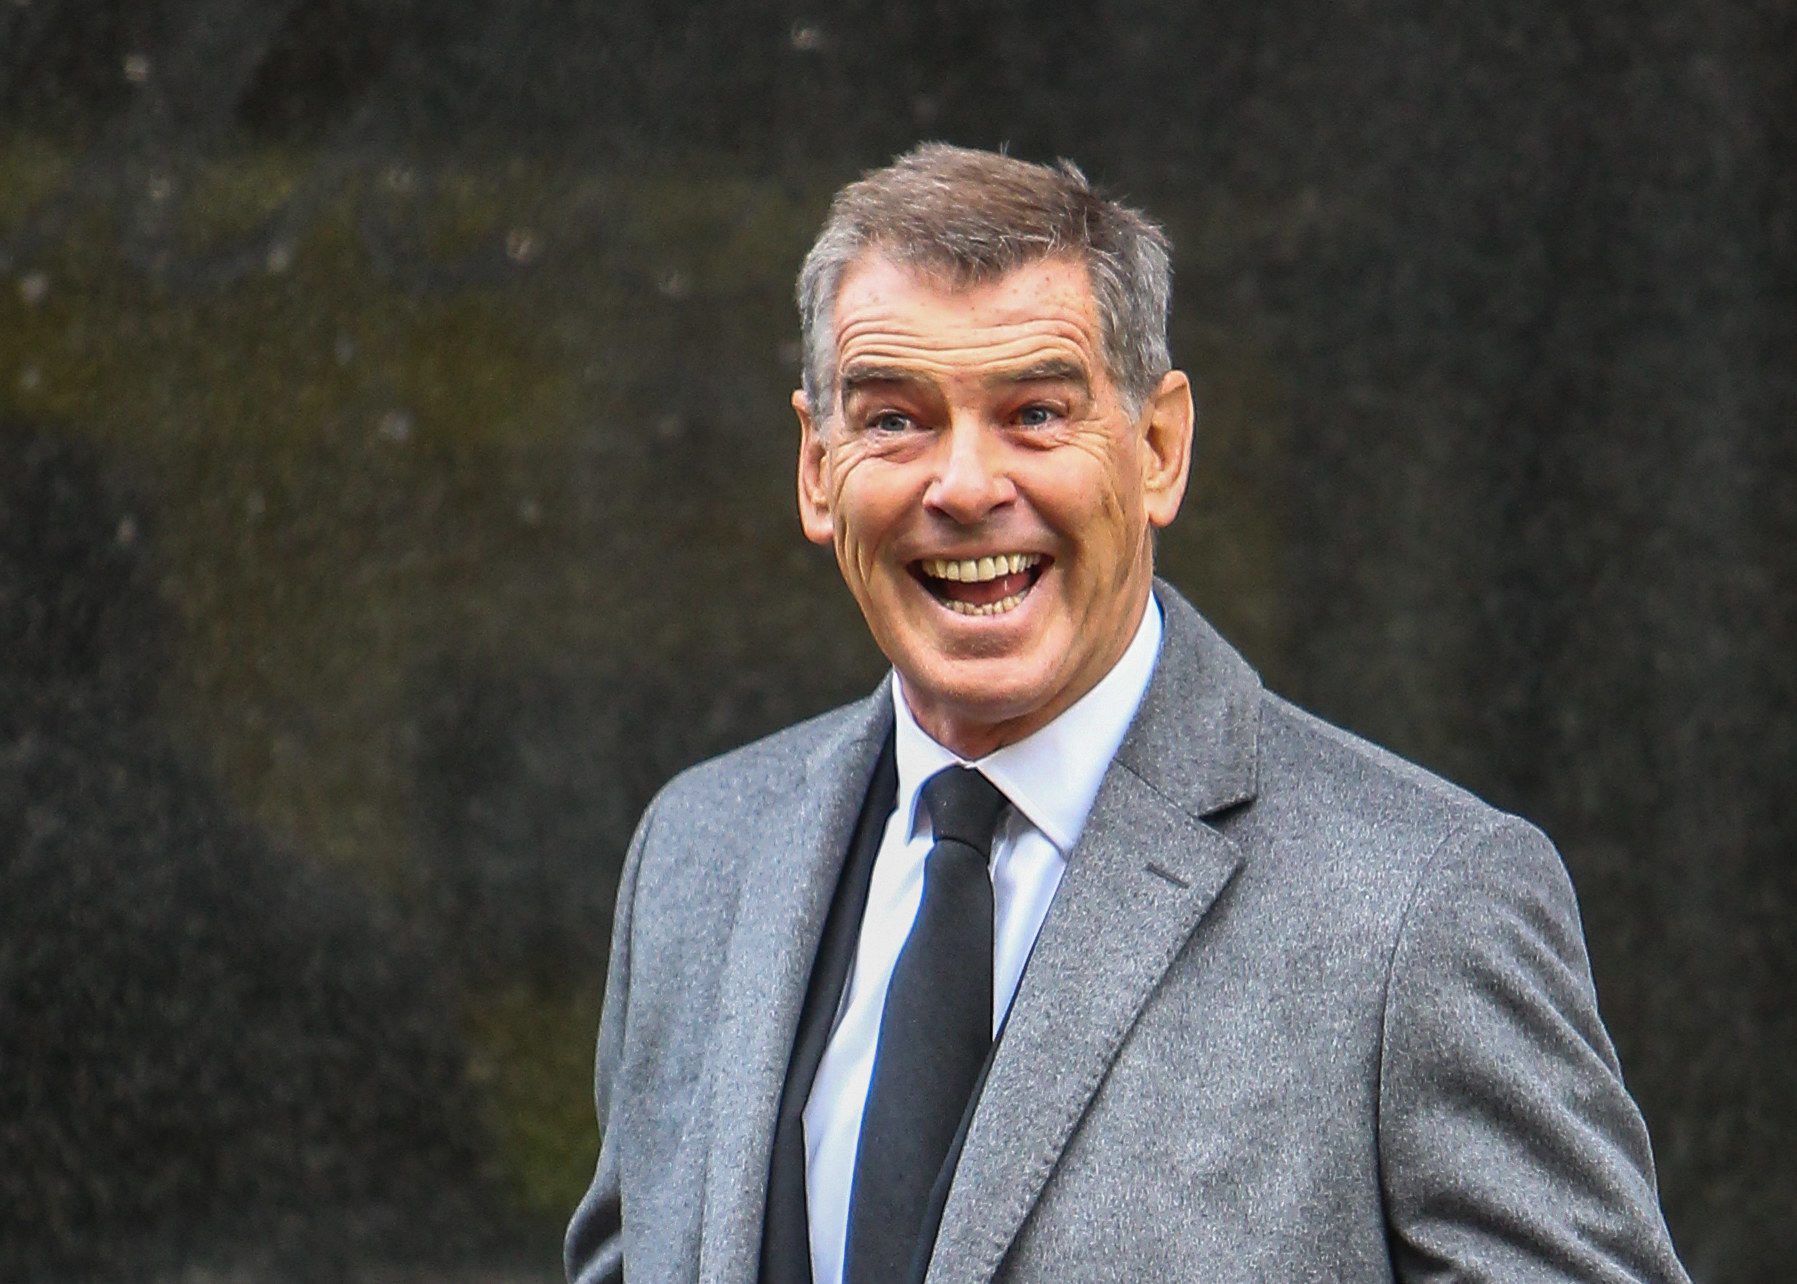 Pierce Brosnan smiling widely.